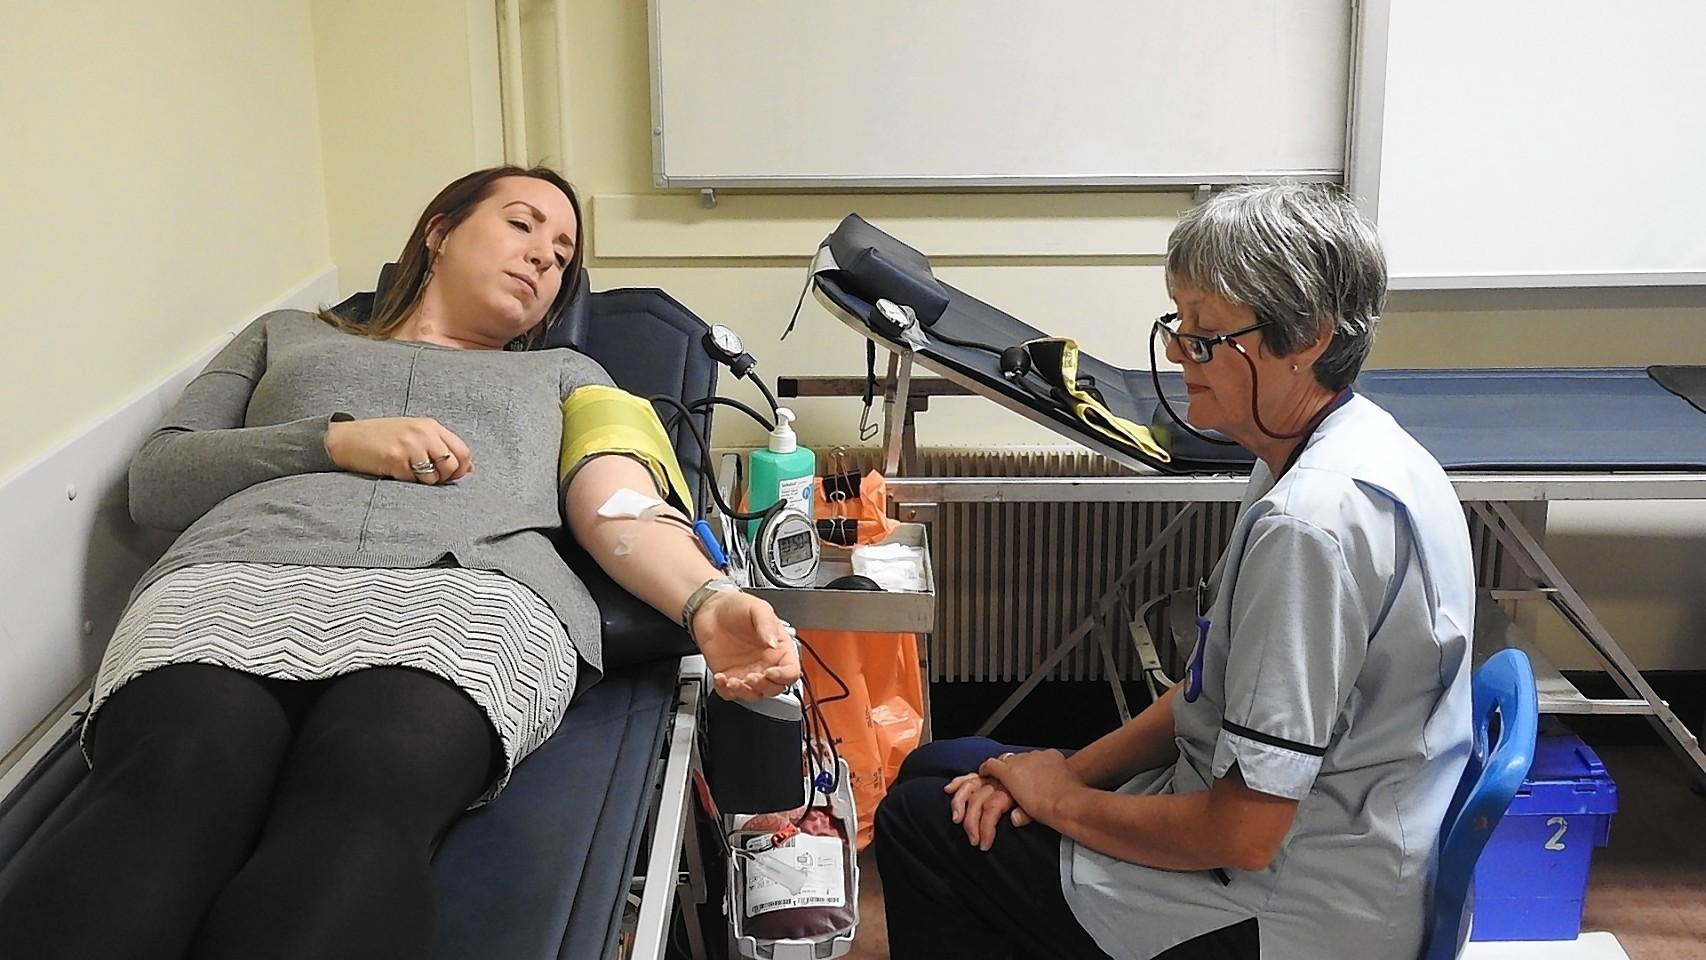 Council staff and members have been doing their bit for the transfusion service.